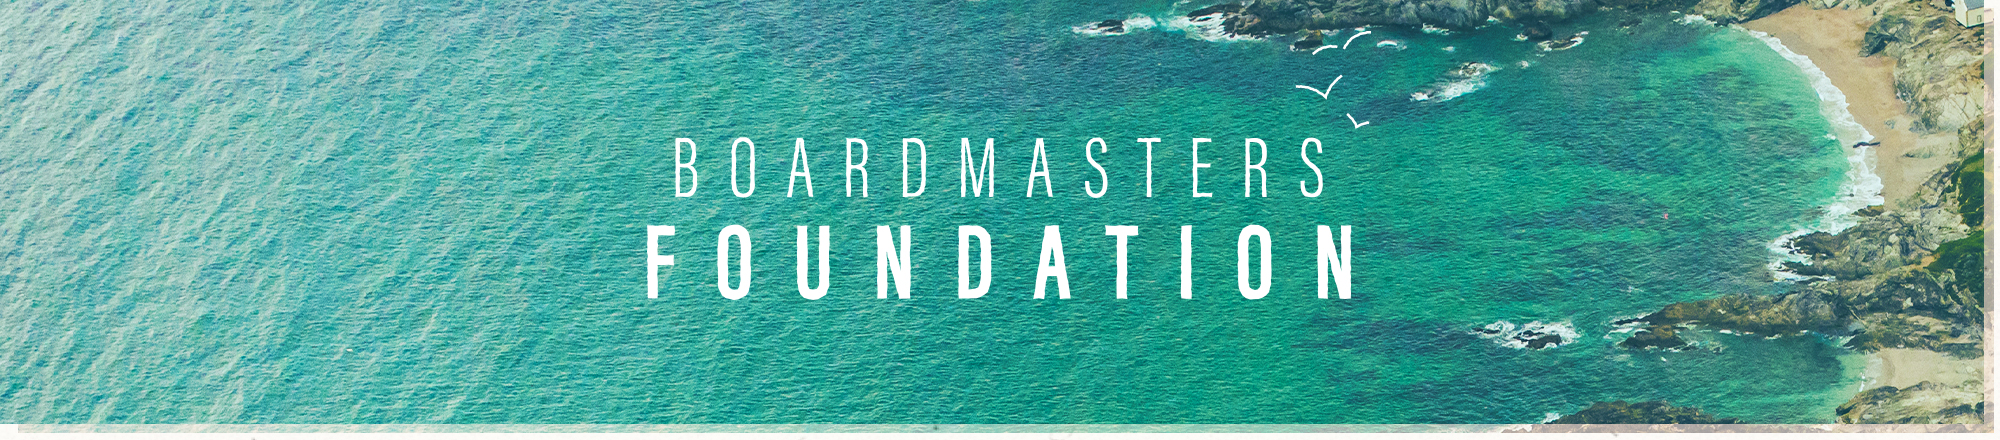 Boardmasters Foundation